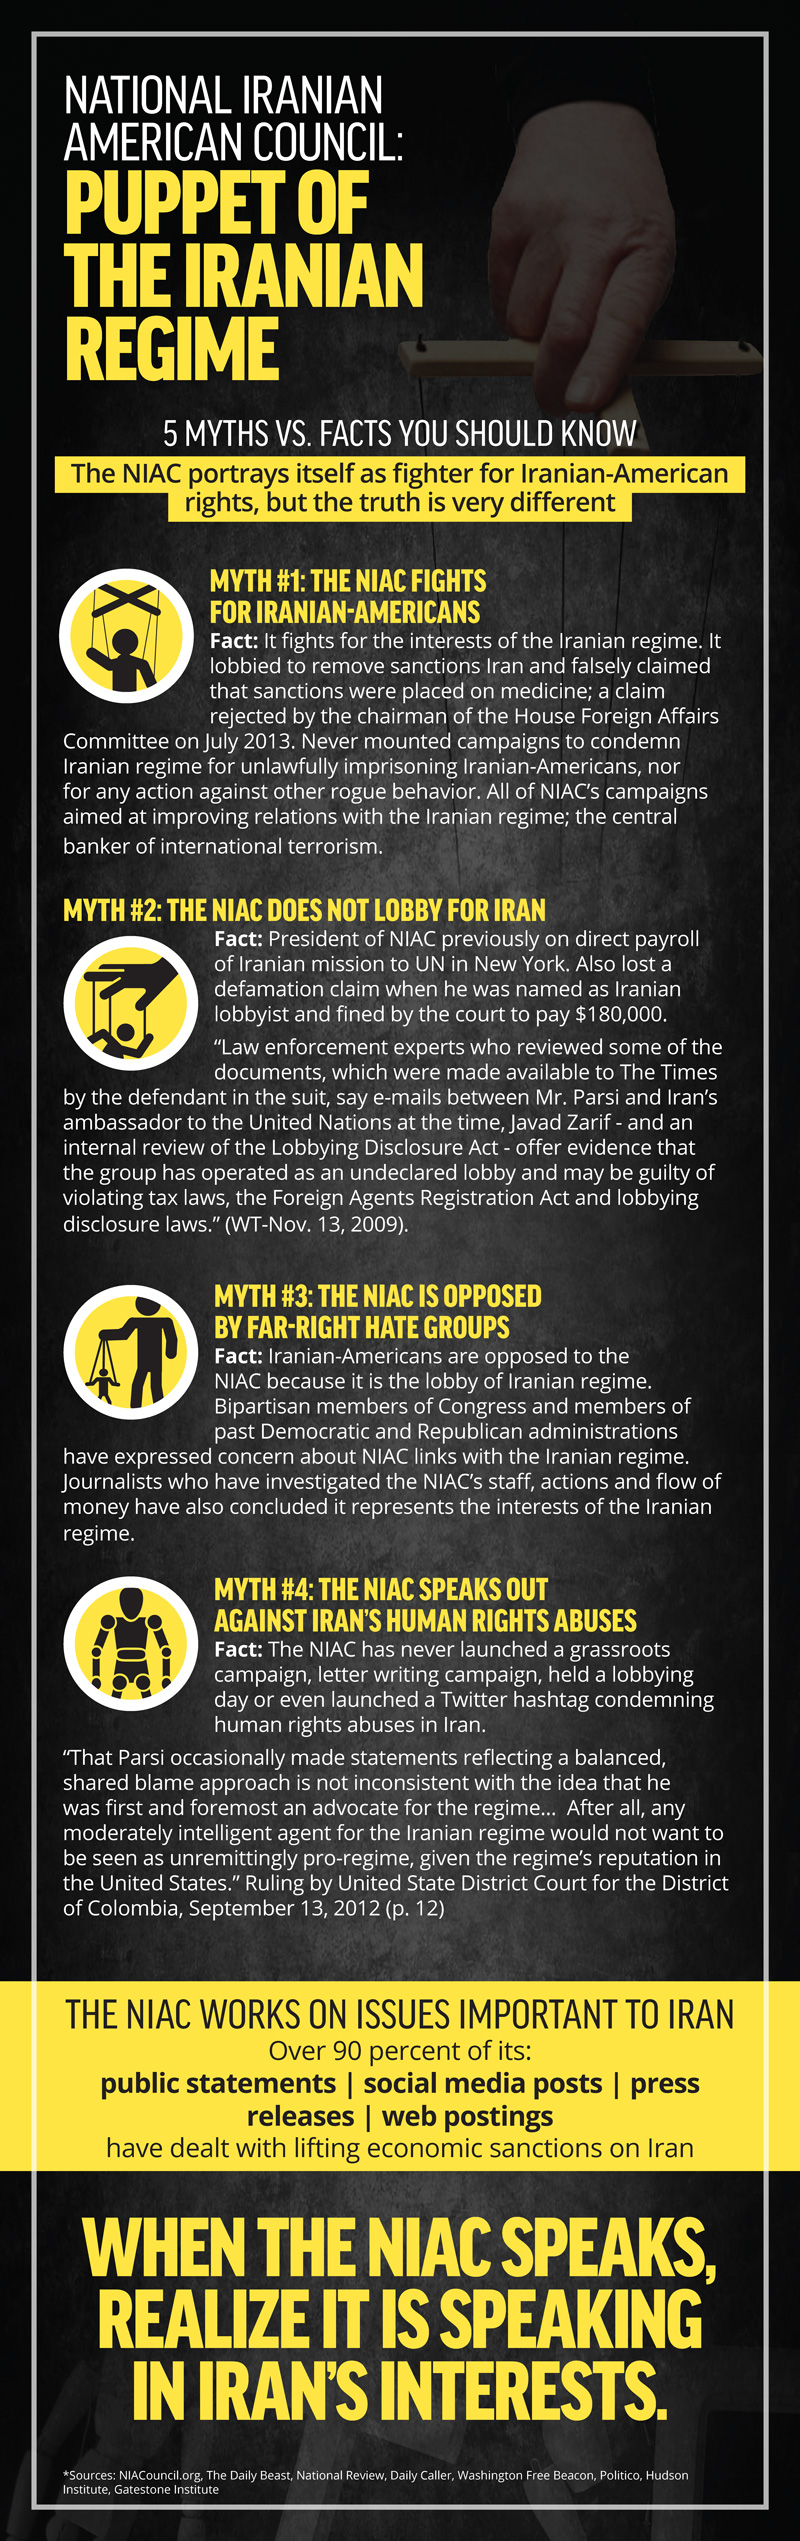 Myths and Facts about National Iranian-American Council-NIAC